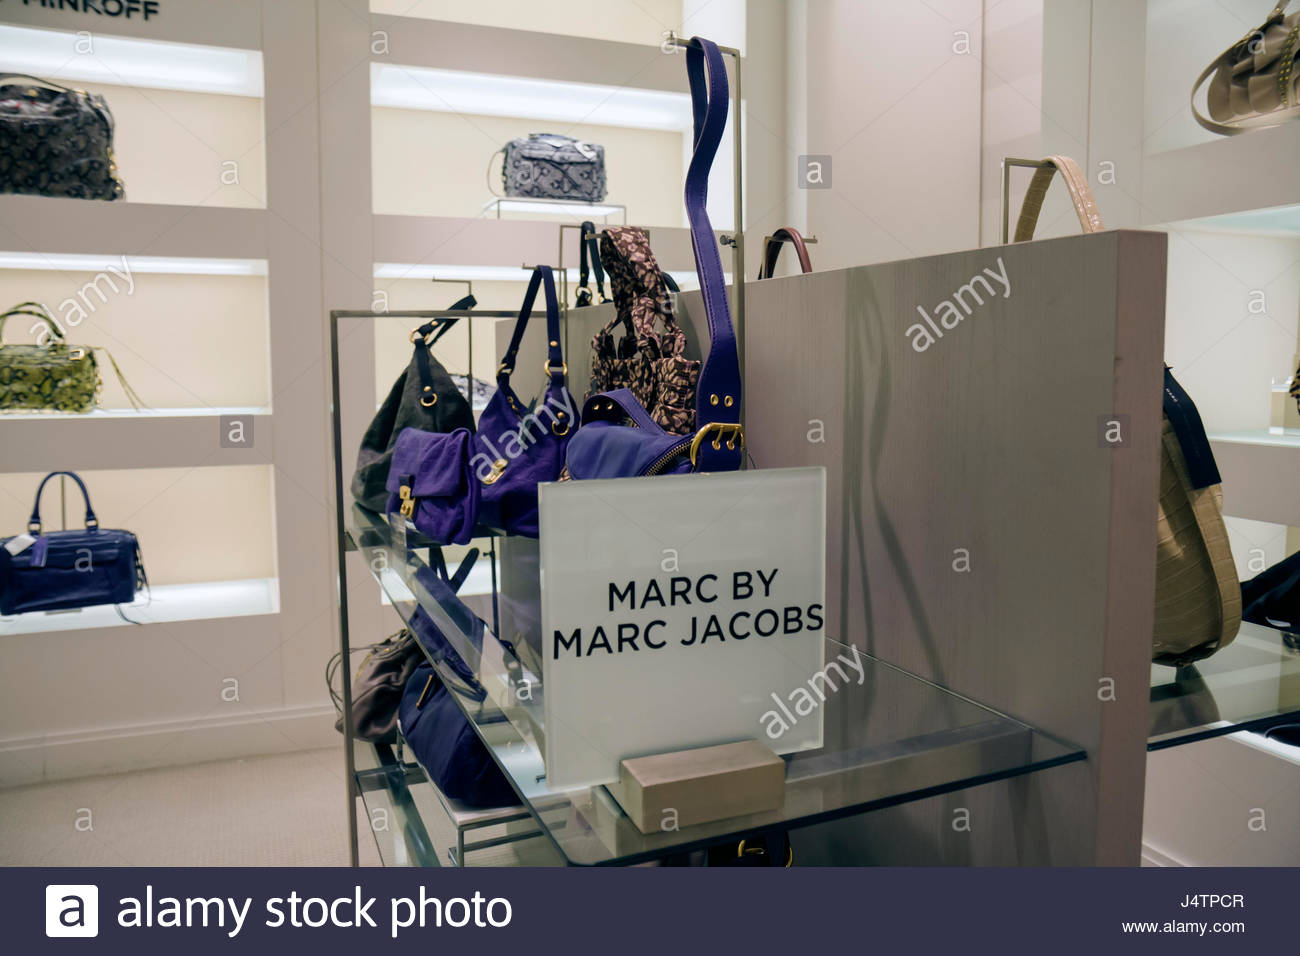 Palm Beach Florida Worth Avenue Saks Fifth 5th Avenue business upscale fashion luxury high-end department store - Stock Image